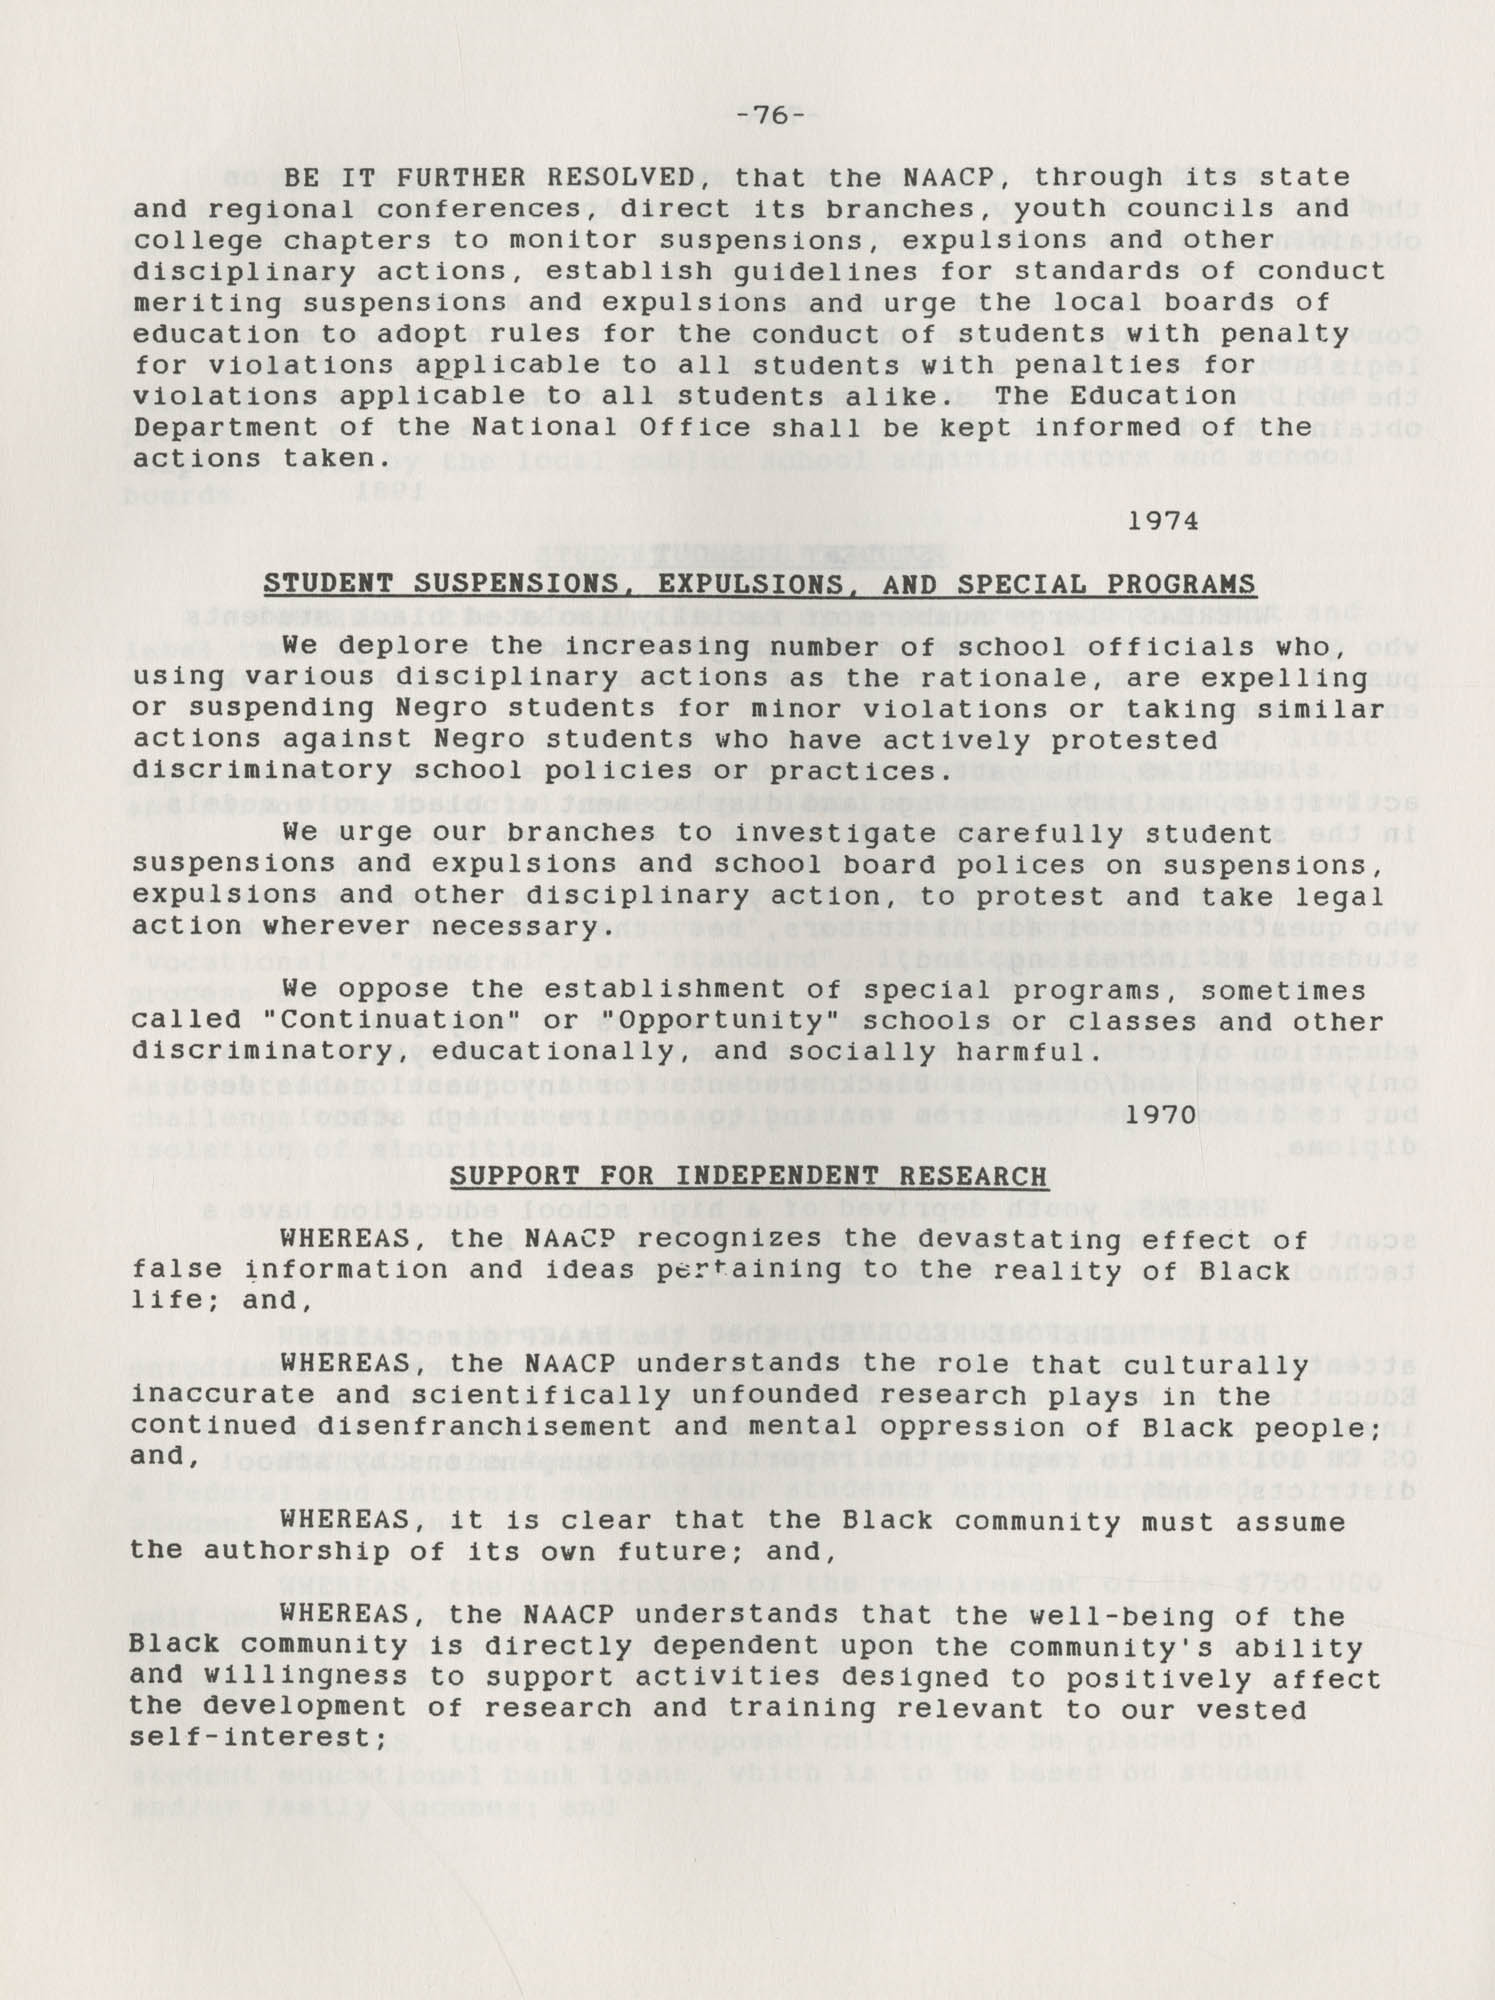 NAACP Resolutions on Education, 1970-1989, Index to Education Resolutions, Page 76